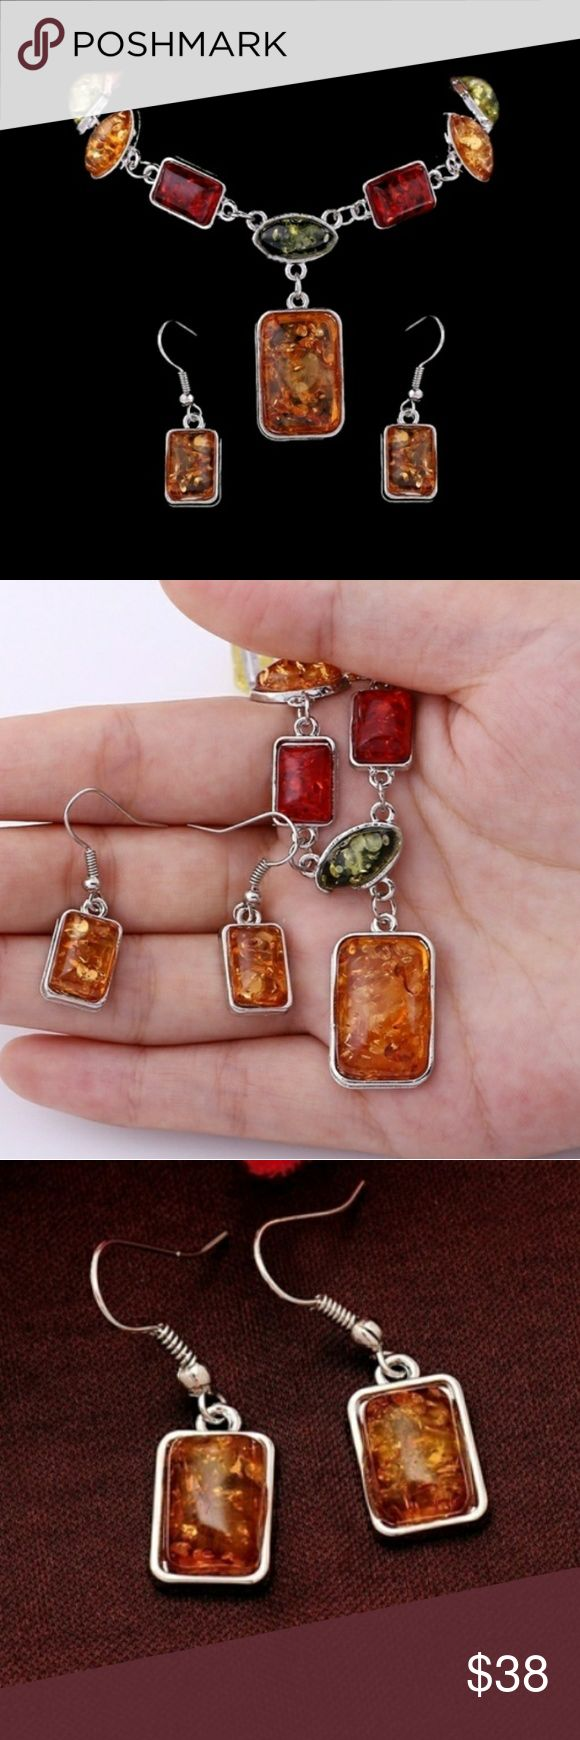 Sterling Silver African Amber Necklace Set African Amber Necklace & Earring Set Material: Amber (Brown, Red, Green,  Yellow); Alloy metal Occasion: Wedding Party; Evening on the Town; Banquet; Gift; Office; Dinner Package Includes: Necklace & Pair of Earrings Fashion Jewelry Jewelry Necklaces